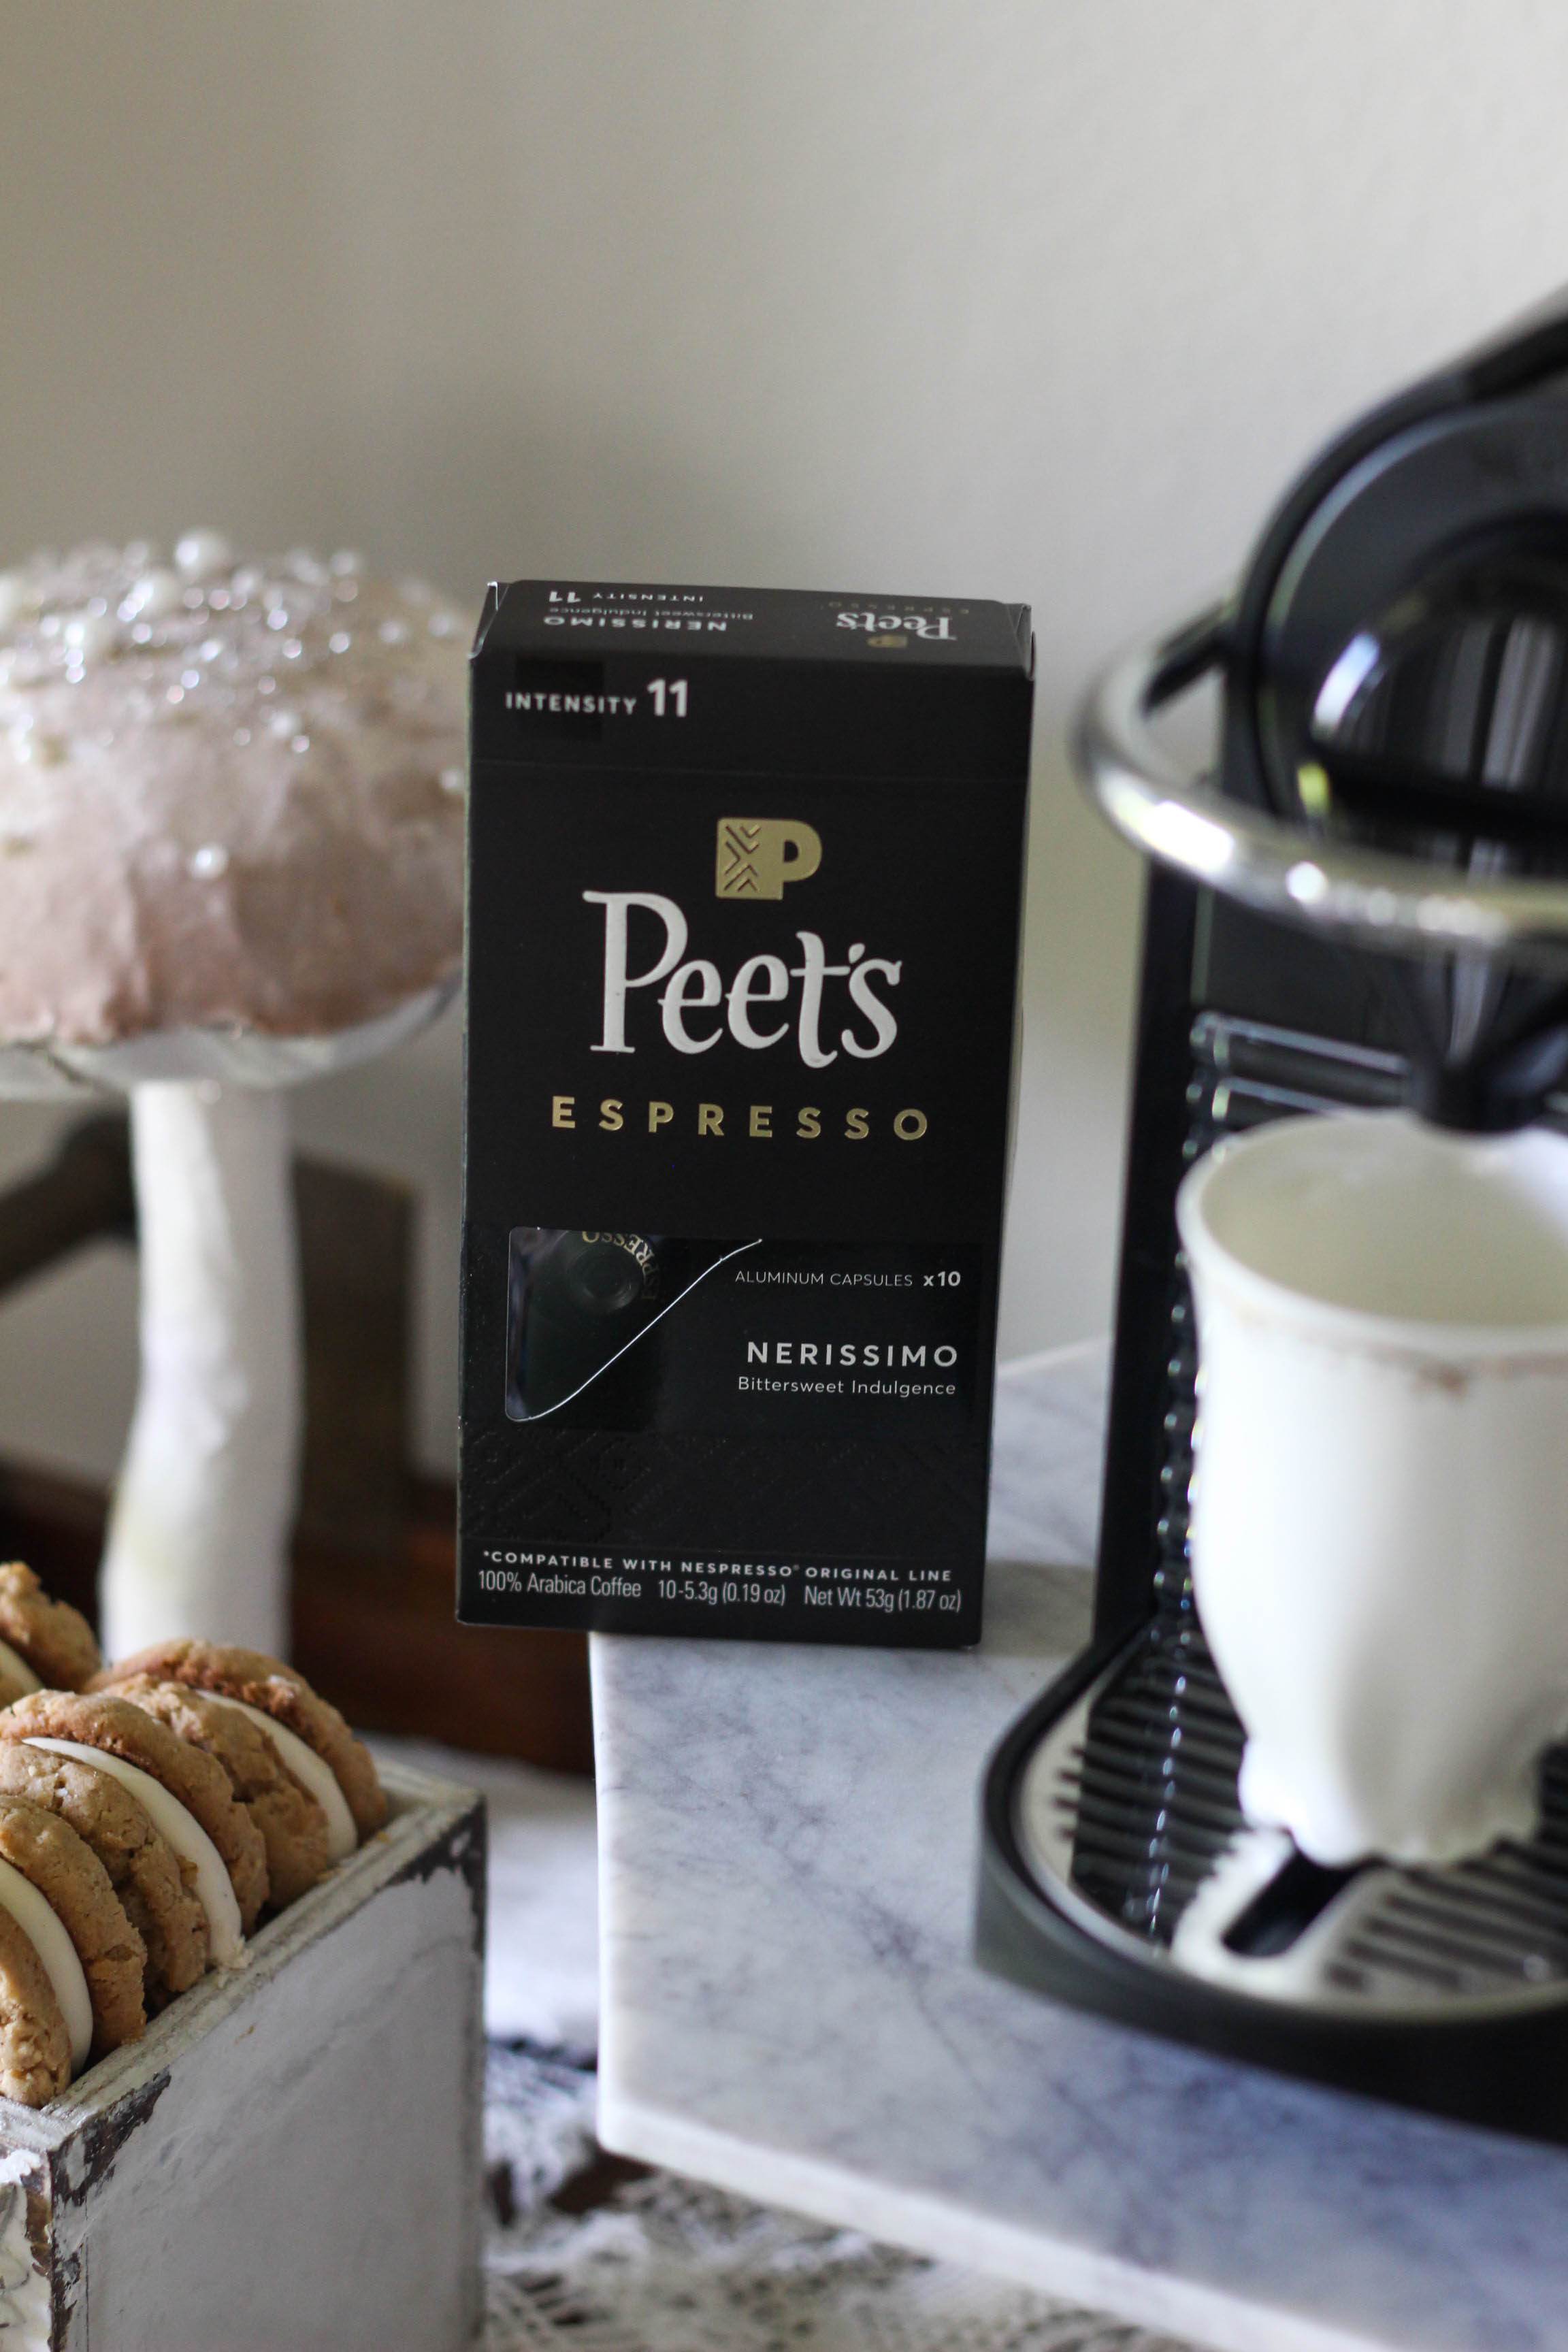 Peets Espresso Capsules for Nespresso Coffee Bar 2 - Caffeine Fix with Peet's Espresso